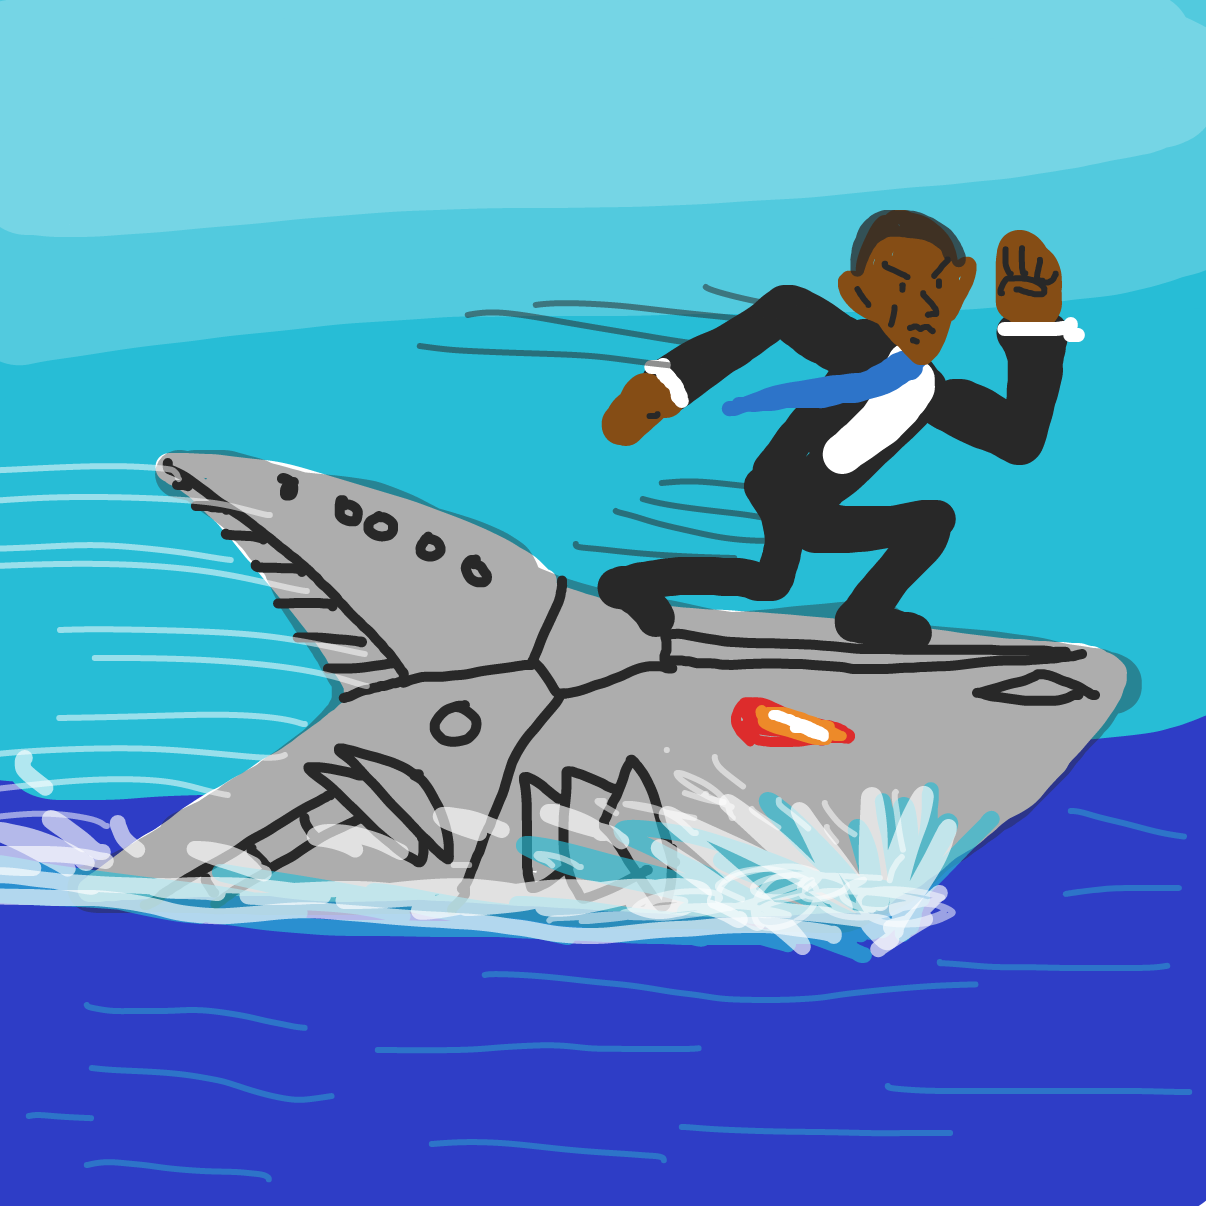 Drawing in Obama and the cyborg shark by bajira